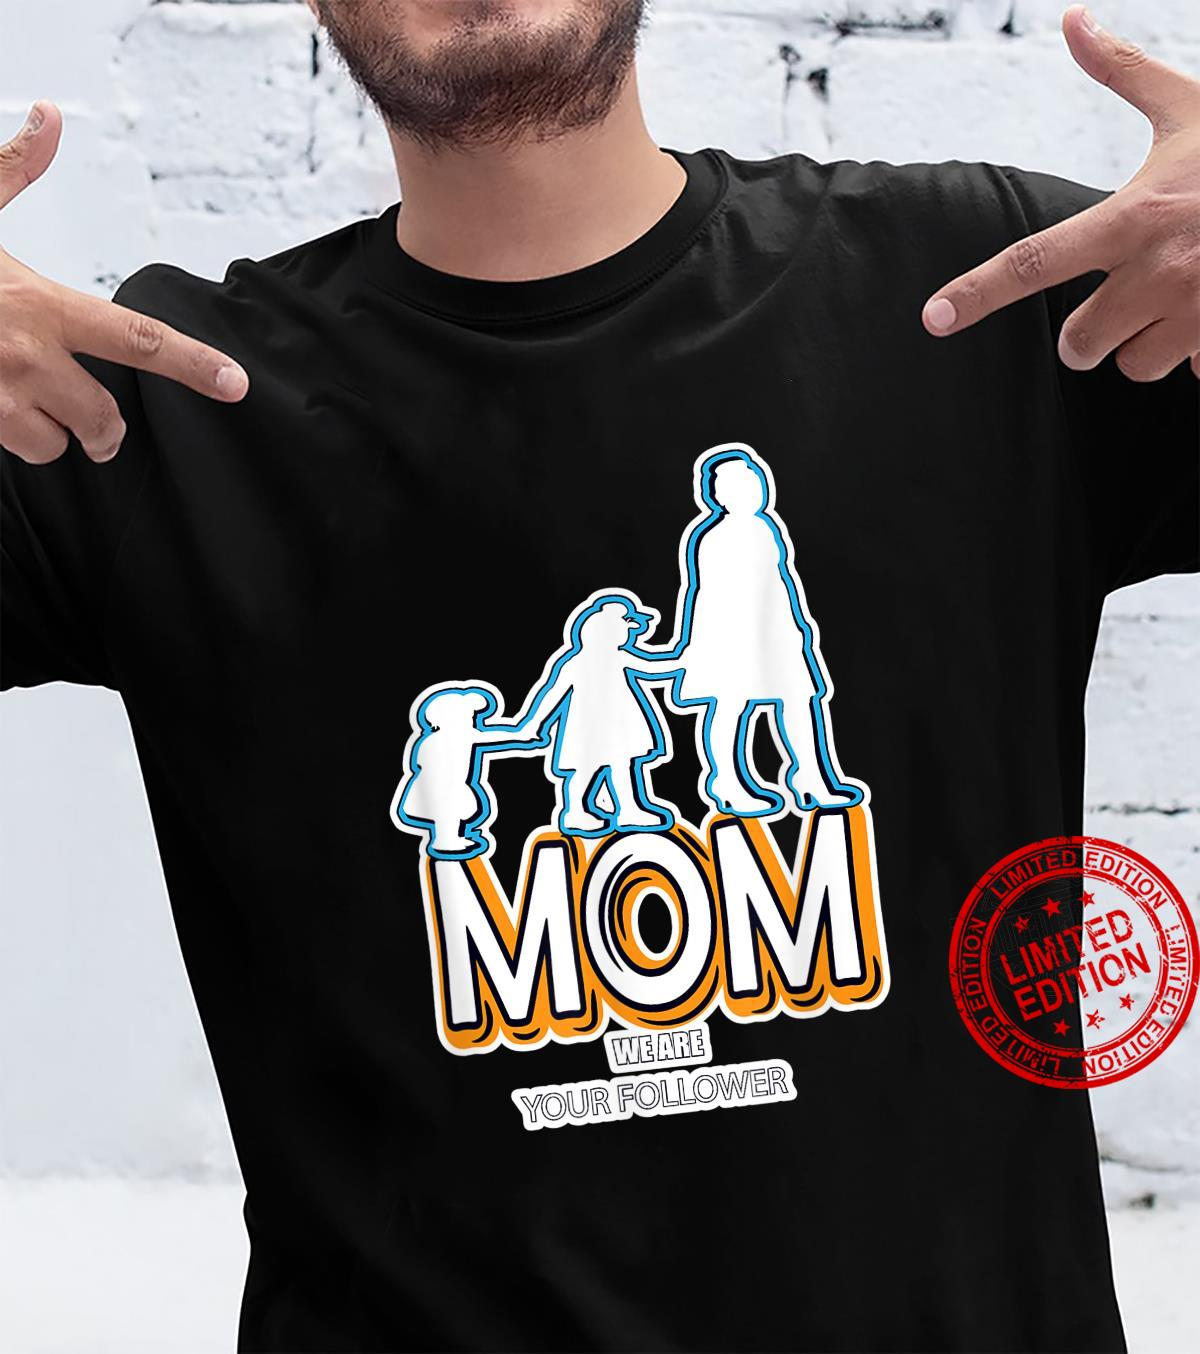 MOM WE ARE YOUR FOLLOWER BEST MOM YOUNG MOM MUMMY DAY Shirt